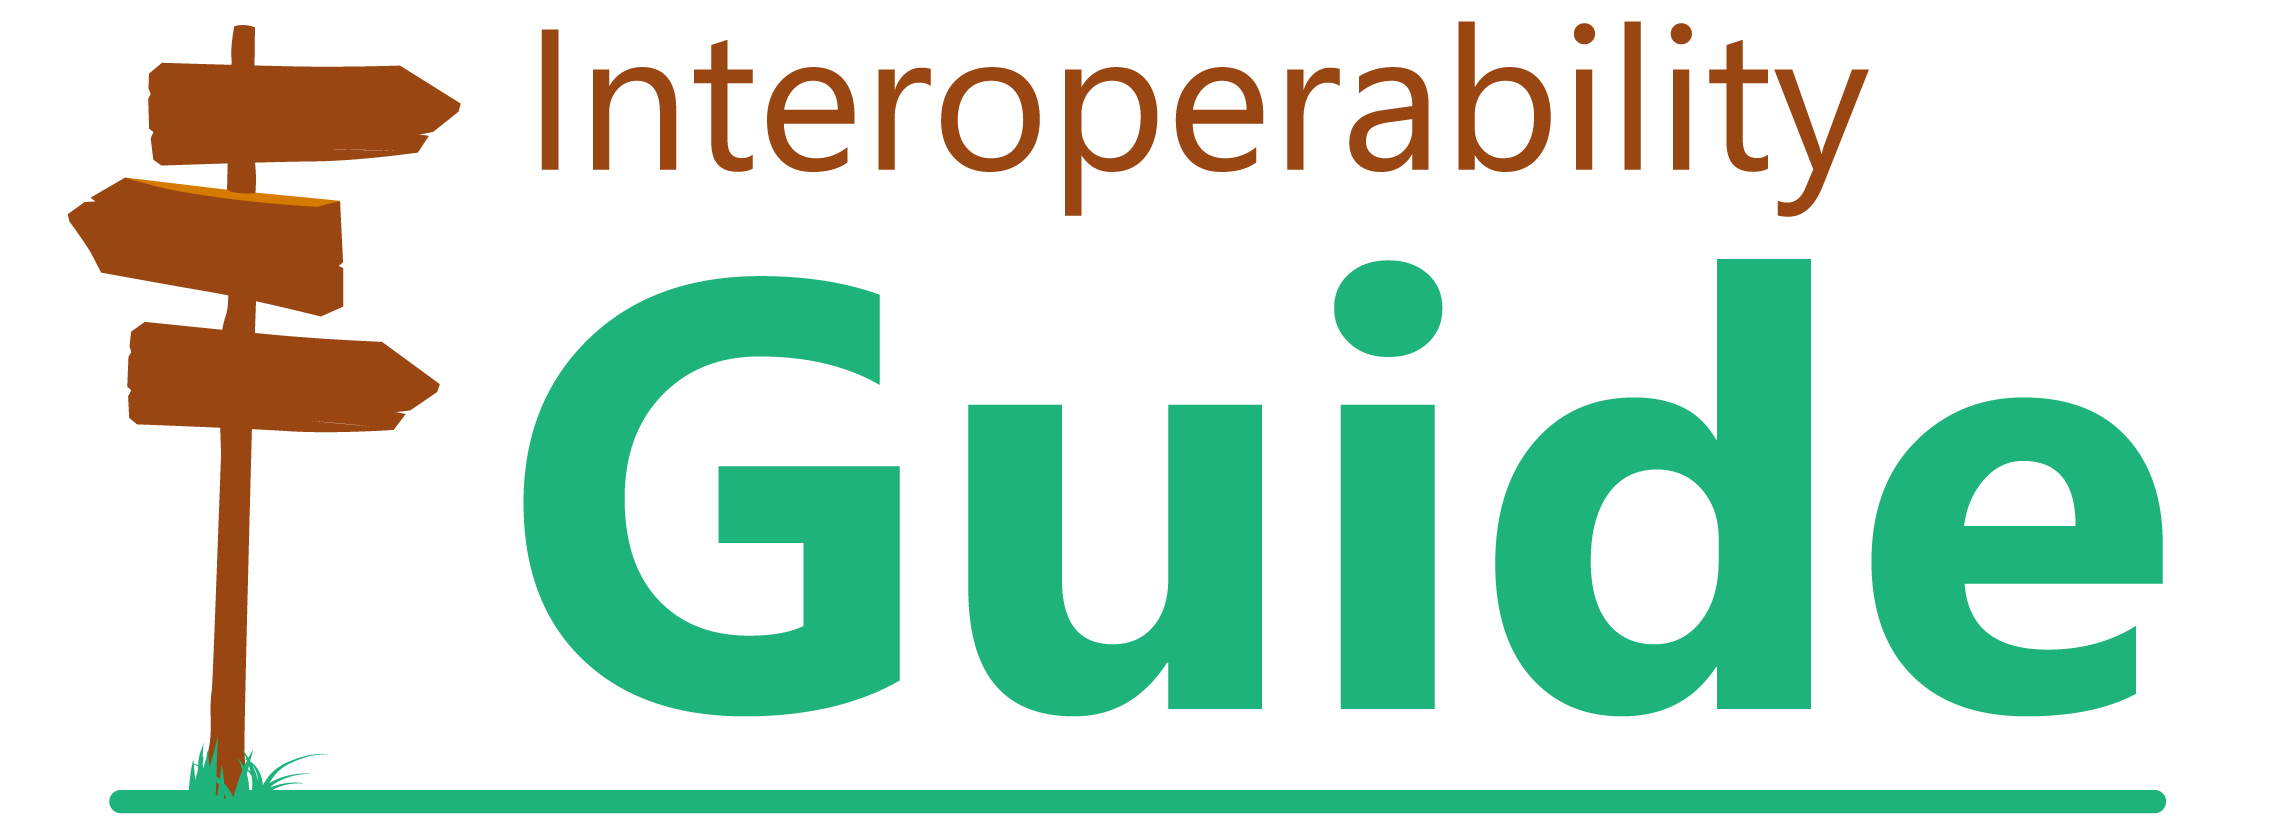 signpost and text 'Interoperability Guide'